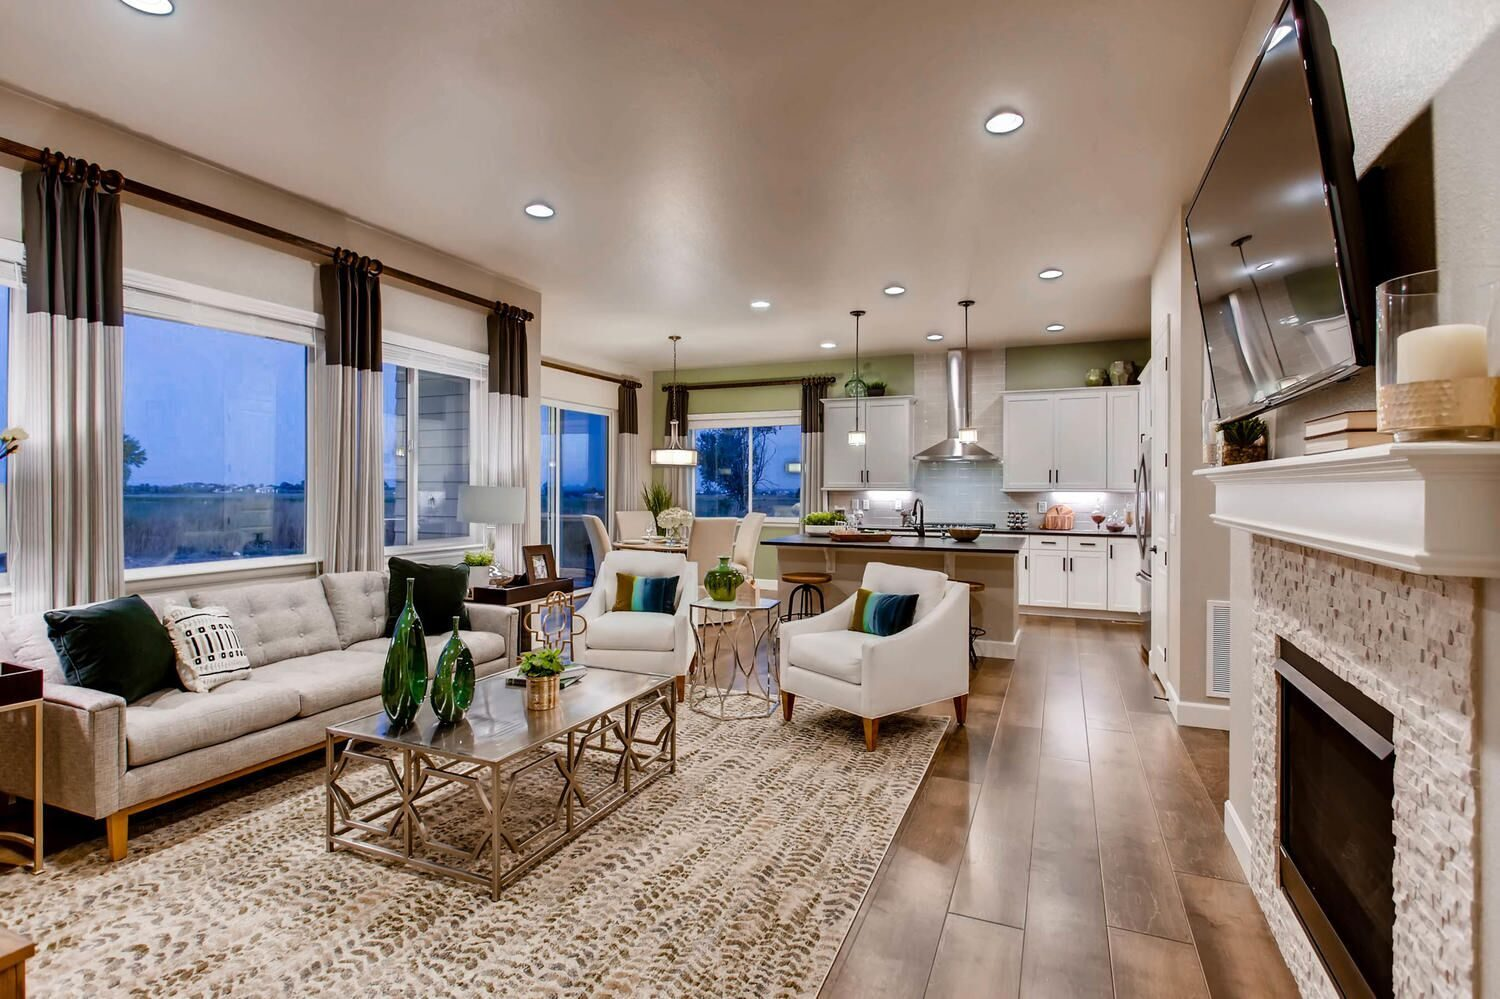 Kathy Andrews Interiors Richfield Homes The Ridge at Harmony Road Windsor CO Model overview